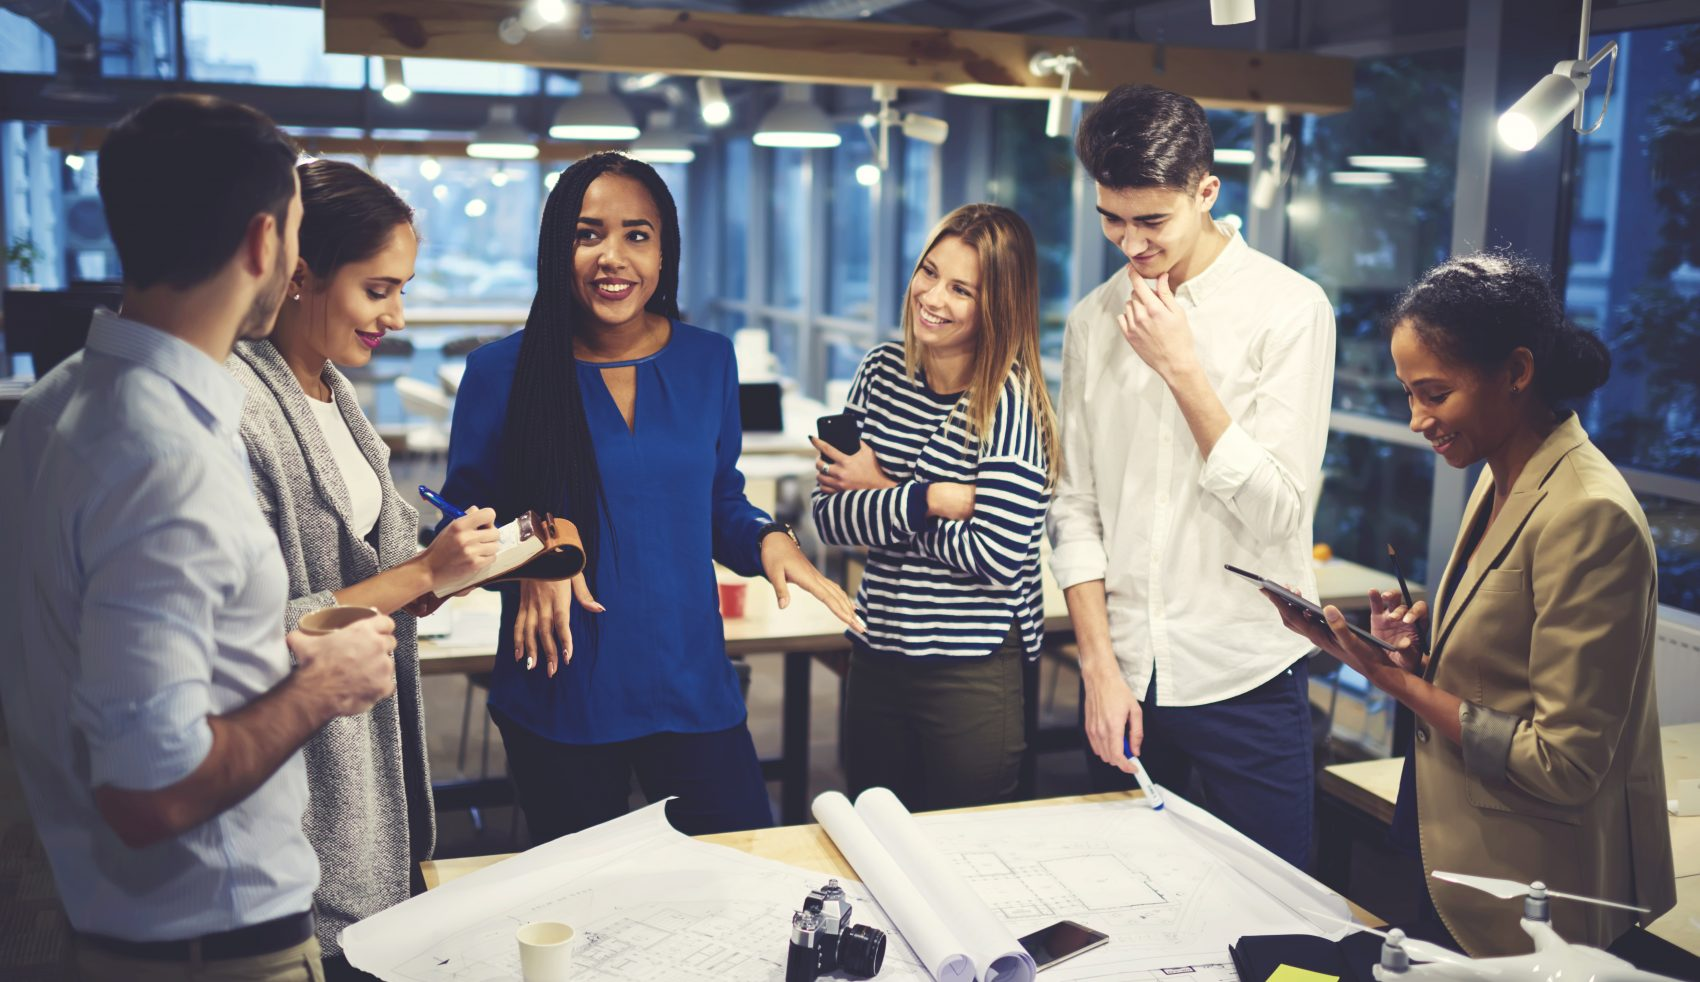 Workplace Cultural Diversity and its Advantages - Diversity